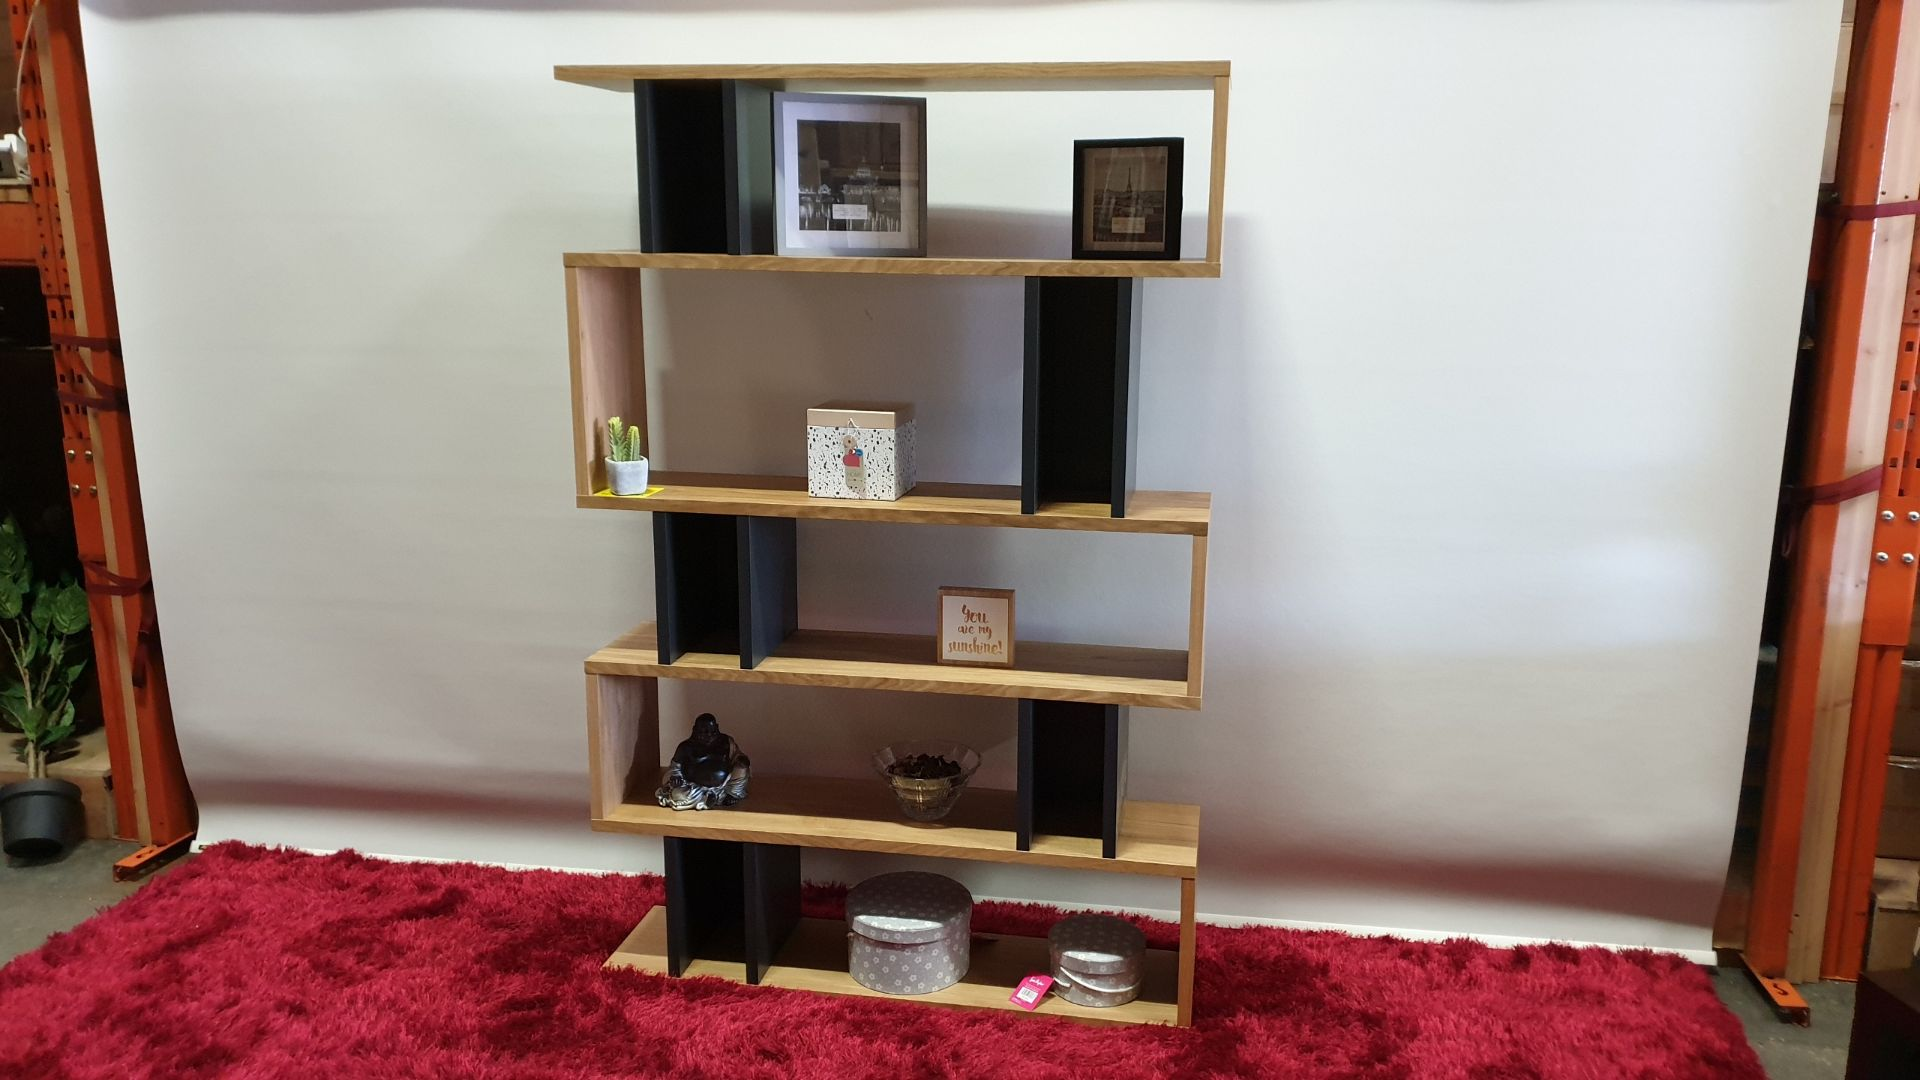 Lot 255 - BRAND NEW CONTENT BY TERRANCE CONRAN BALANCE TALL SHELVING COLOUR OAK / CHARCOAL SIZE H1800 X